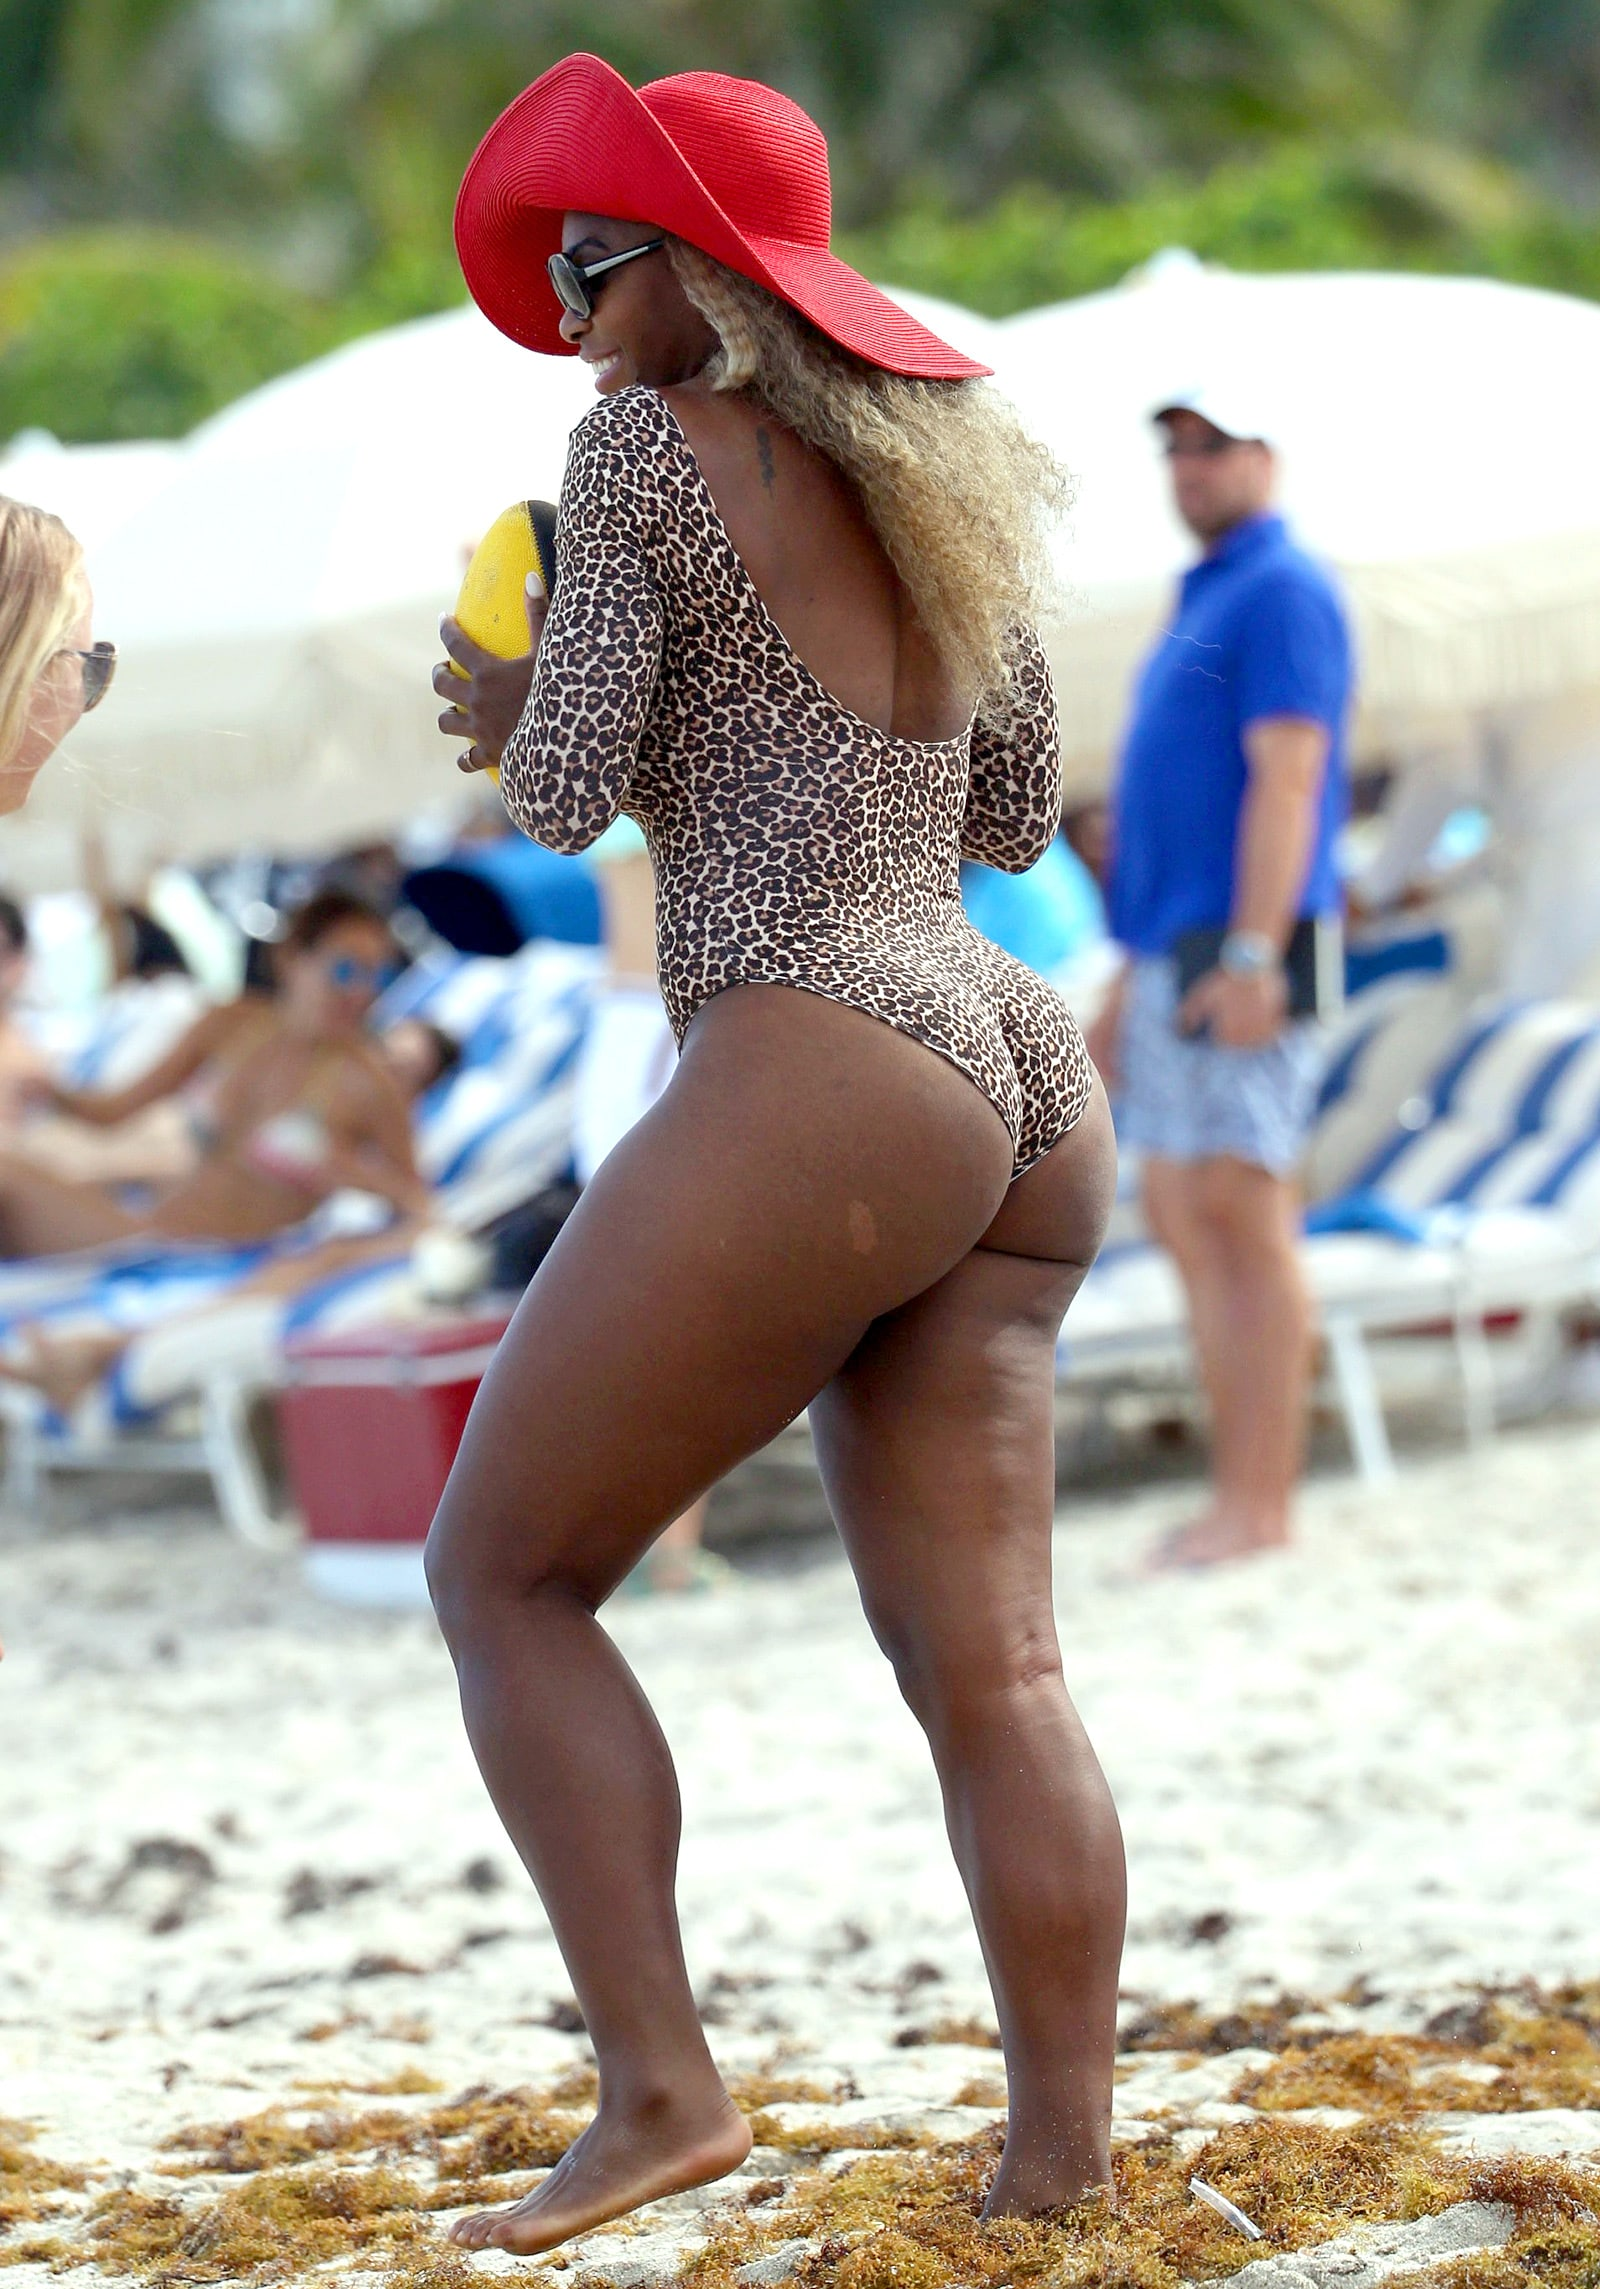 serena william ass pics